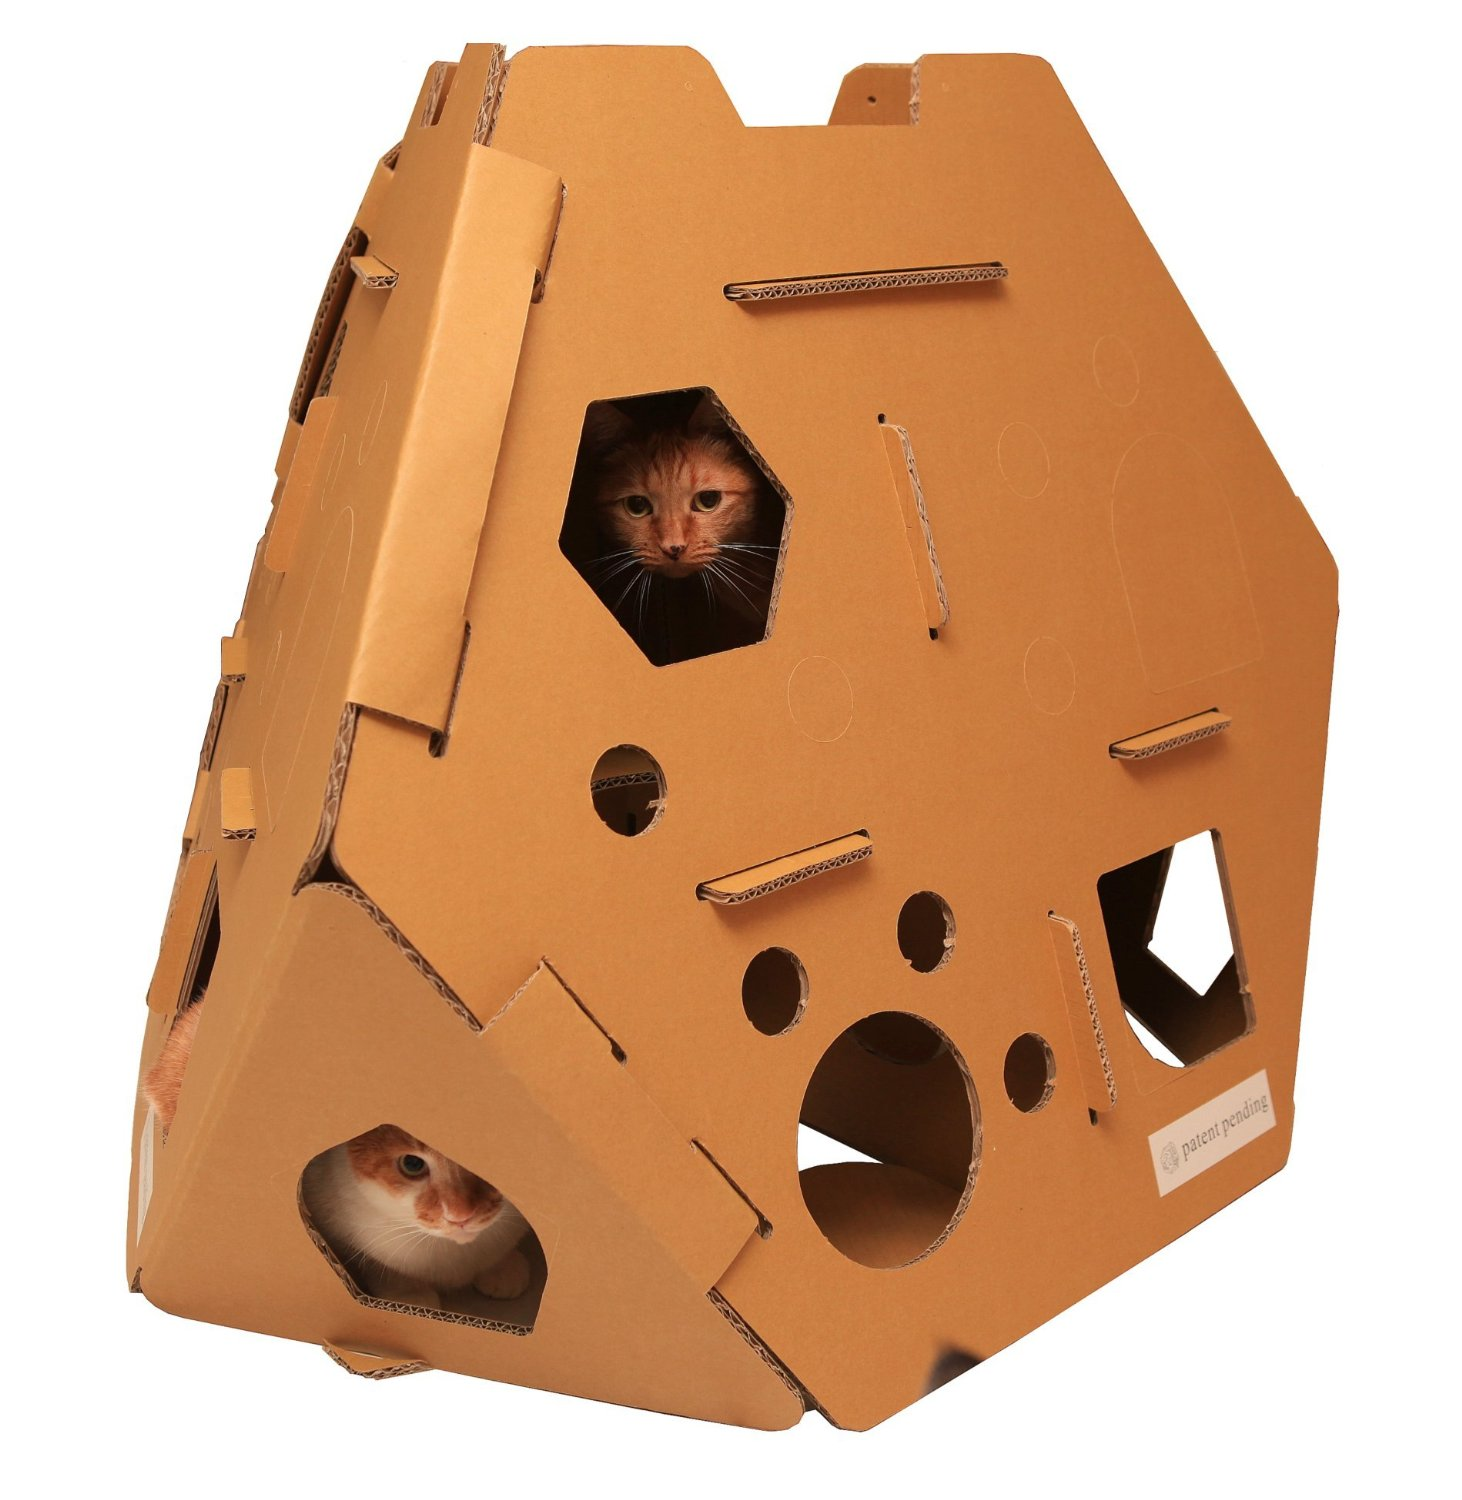 Cardboard House For Cats Cardboard Cat House Cat Scratcher Play House Could Be More